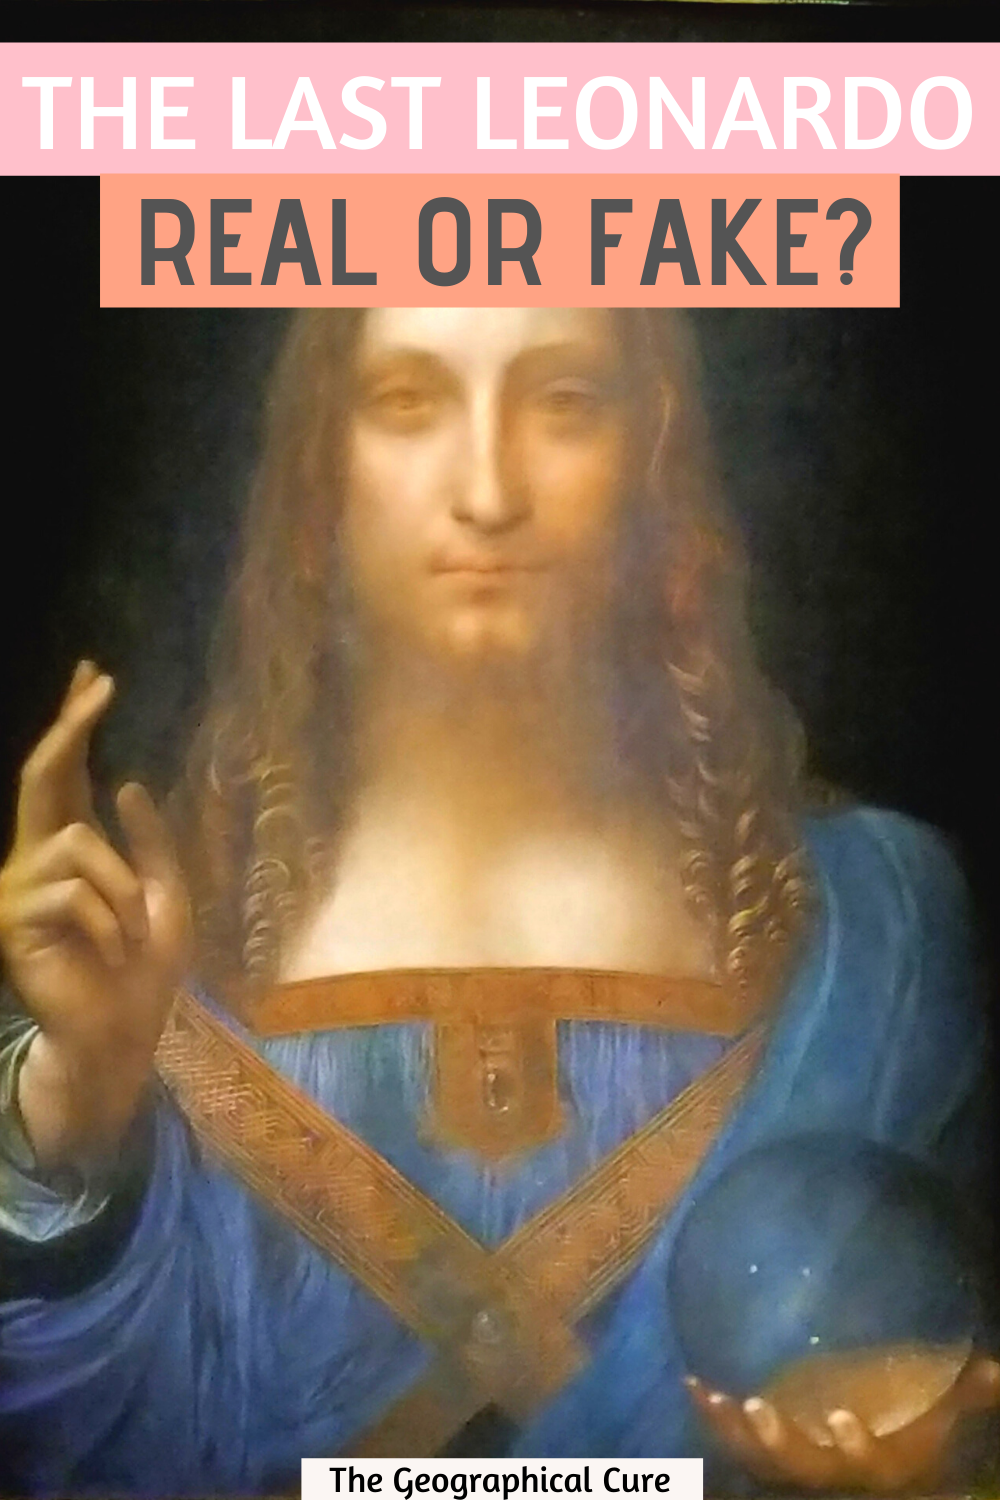 Leonardo da Vince's Salvator Mundi: is it real of fake?